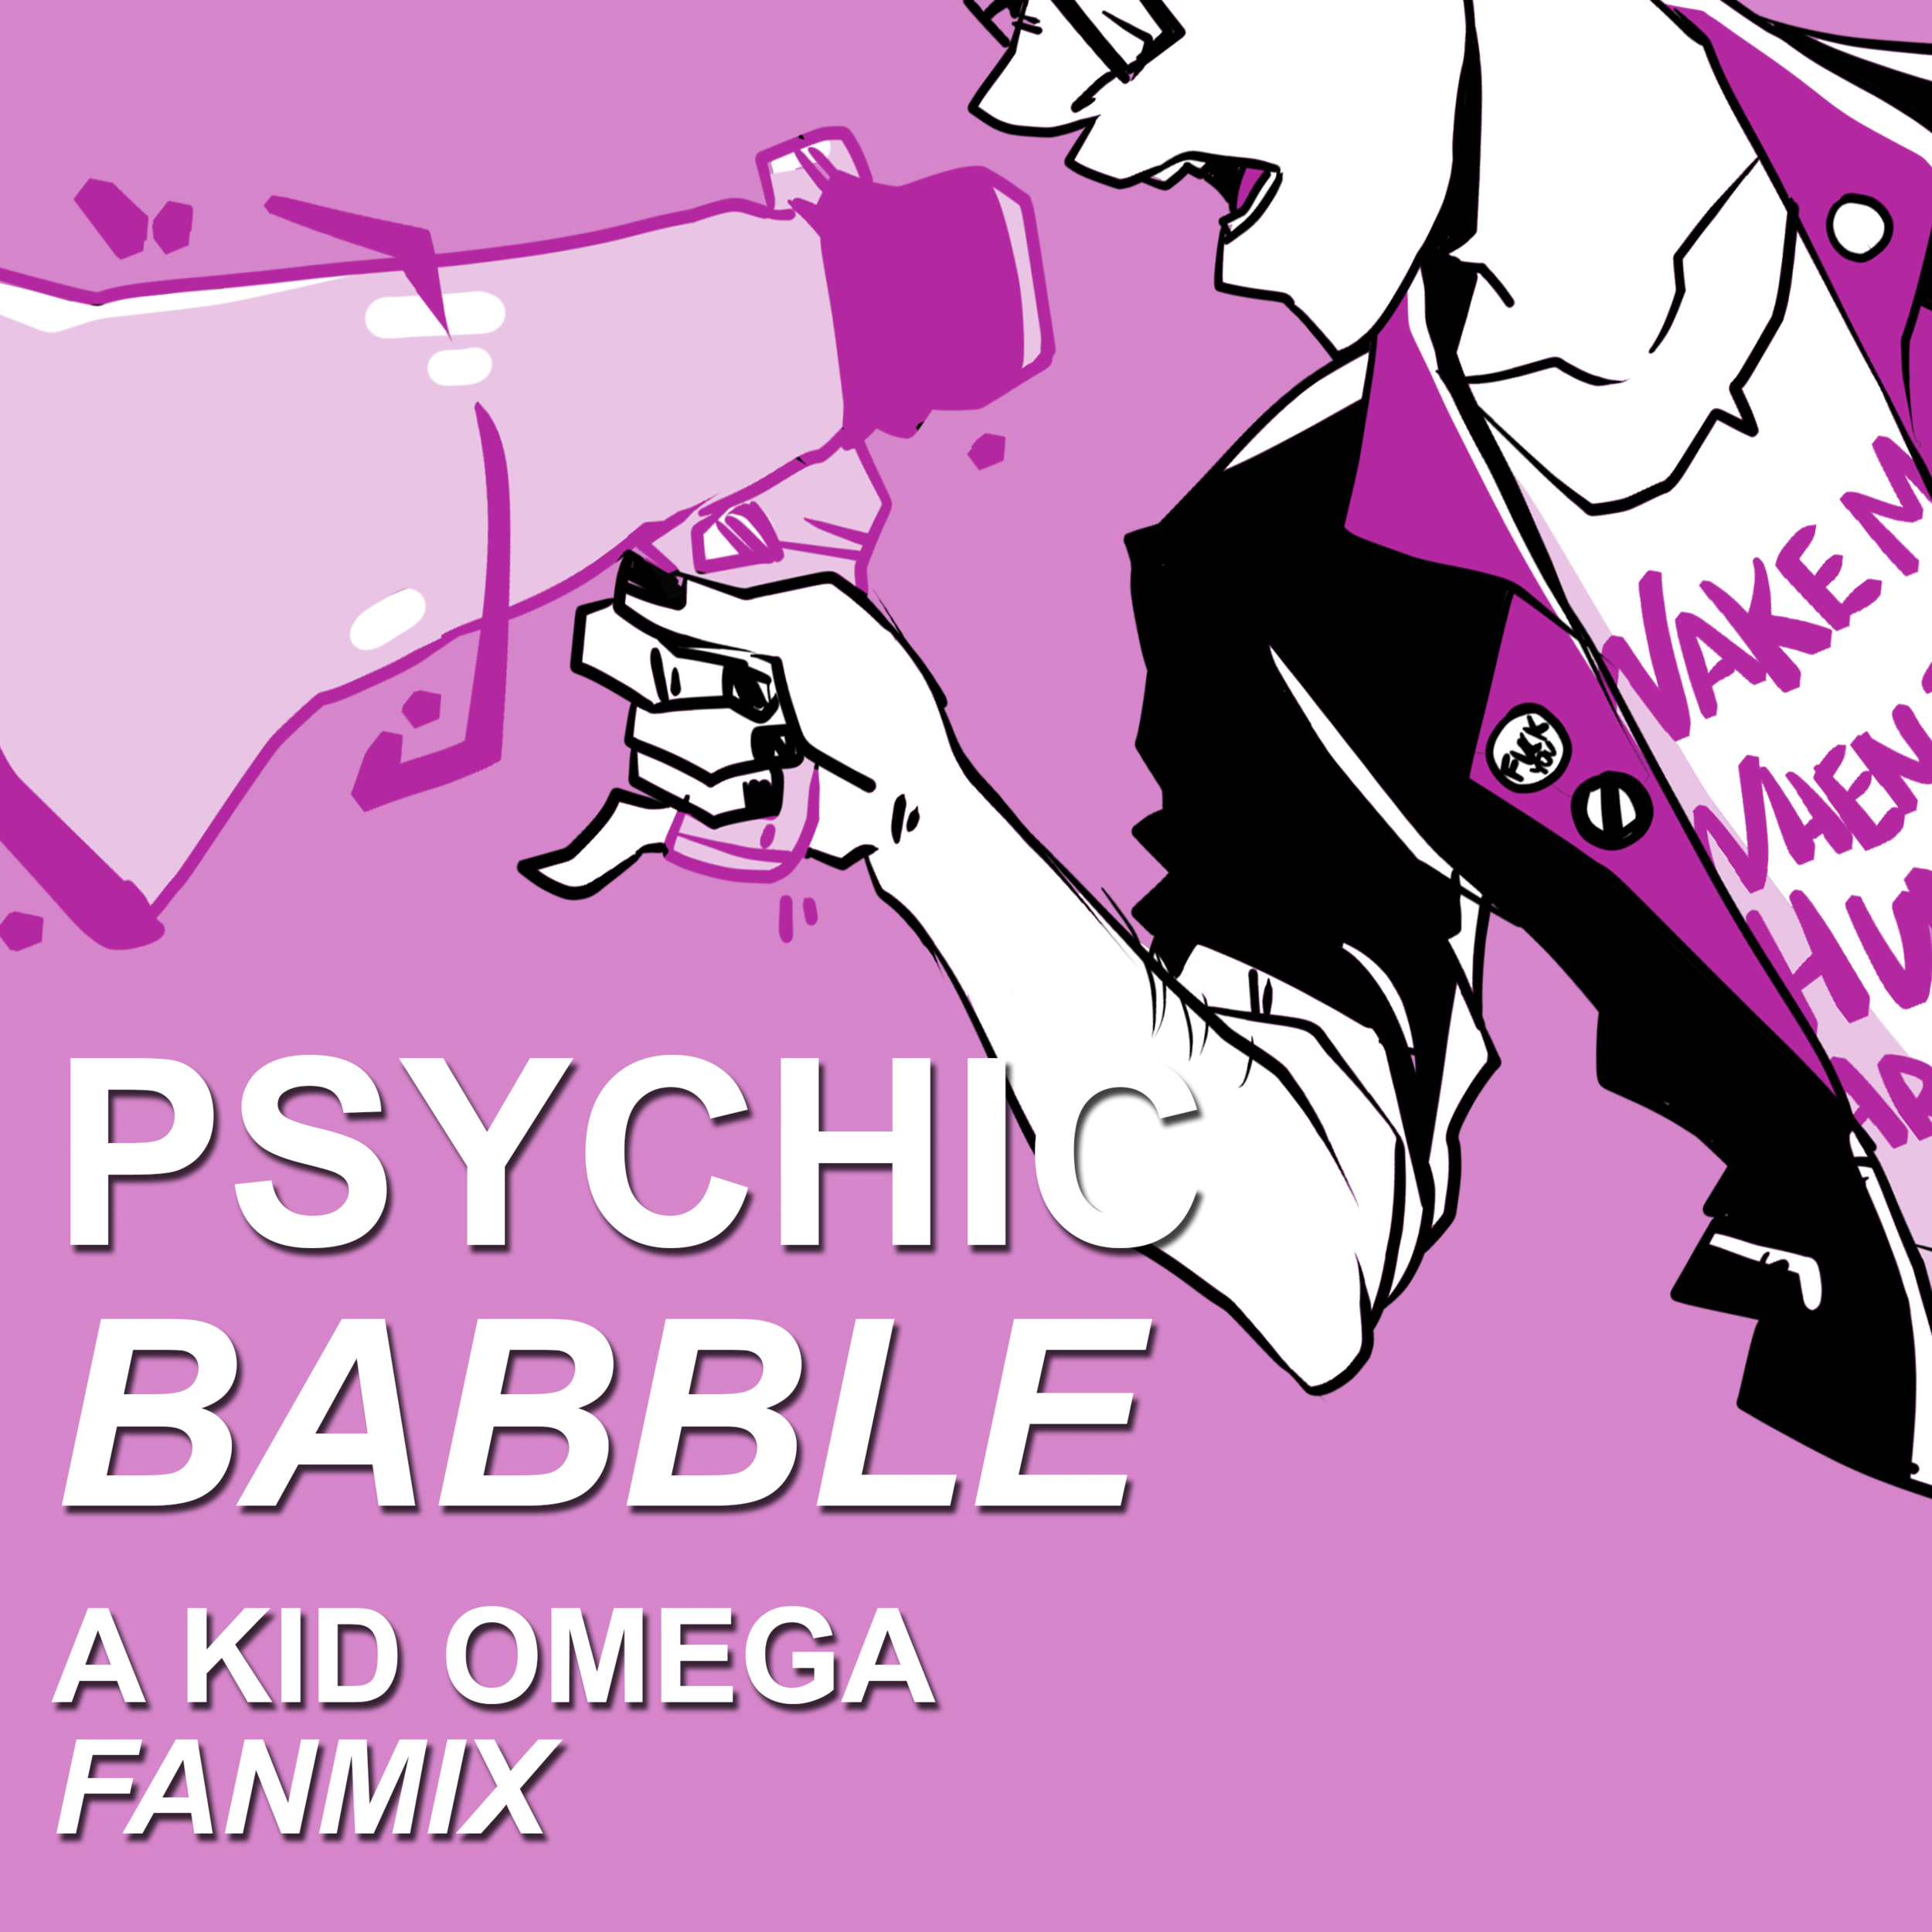 PSYCHIC_BABBLE_11.png